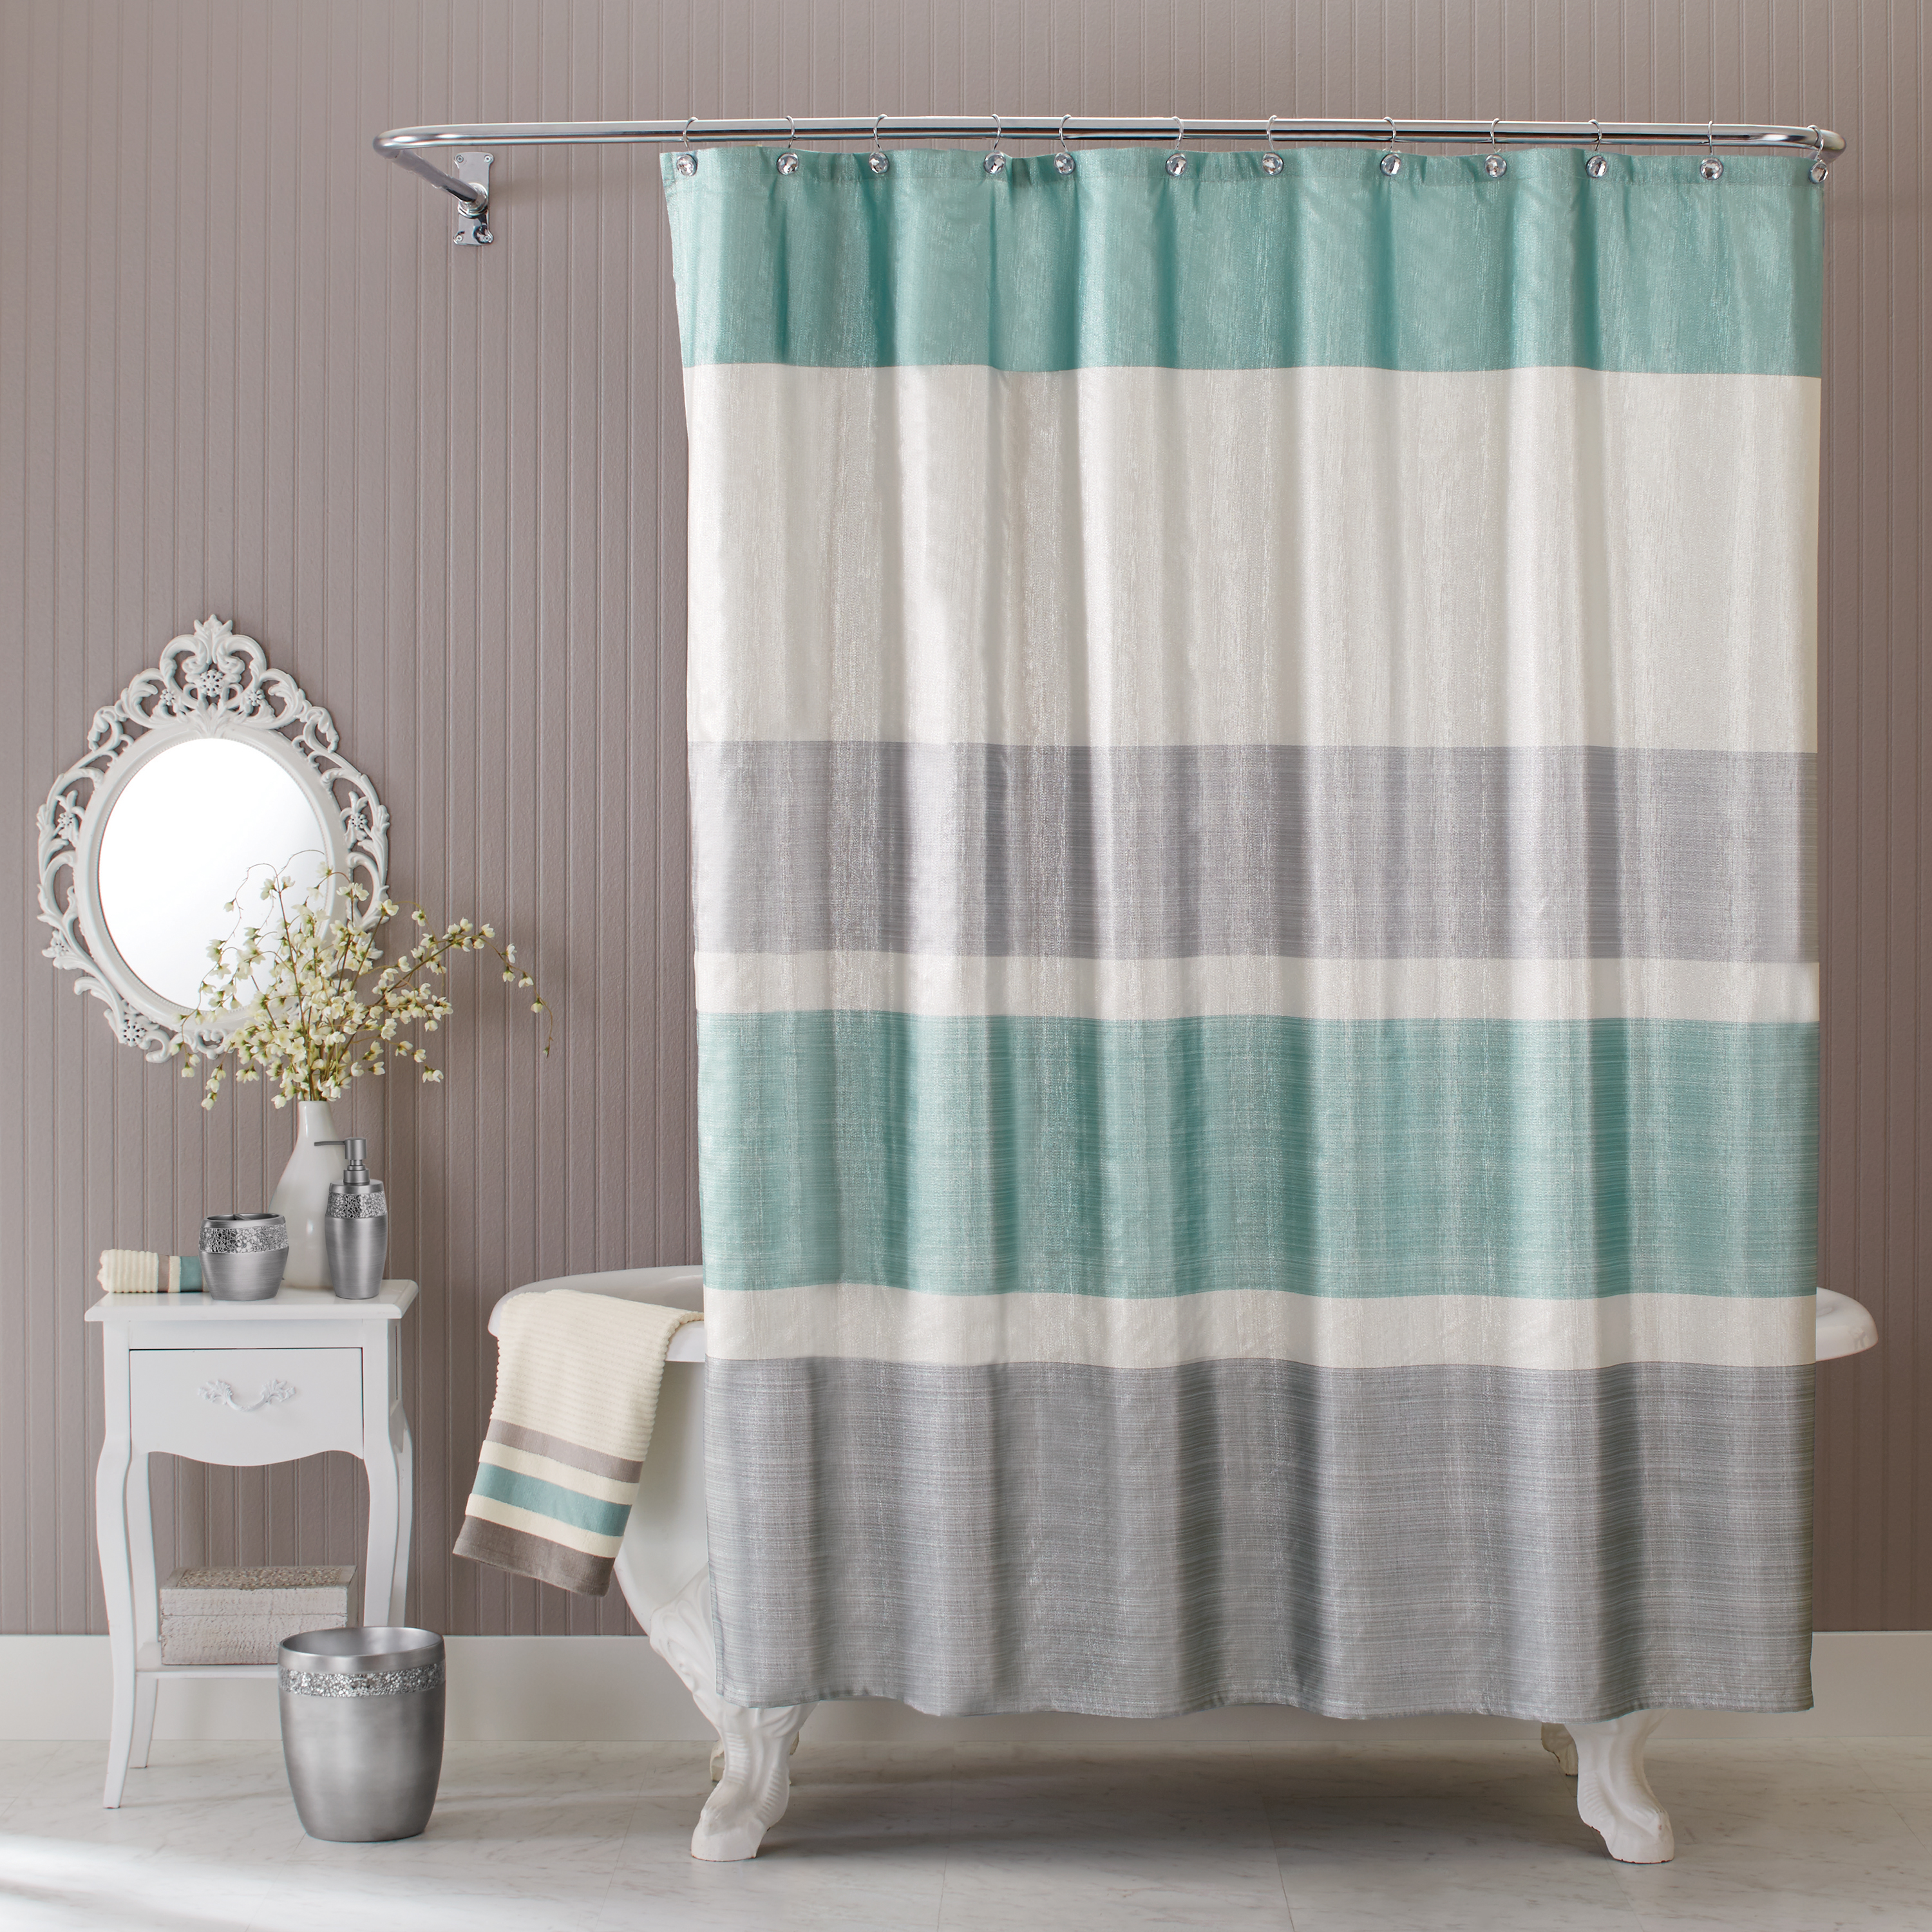 Shower curtains walmart walmart product image better homes garden glimmer shower curtain 72 gumiabroncs Image collections